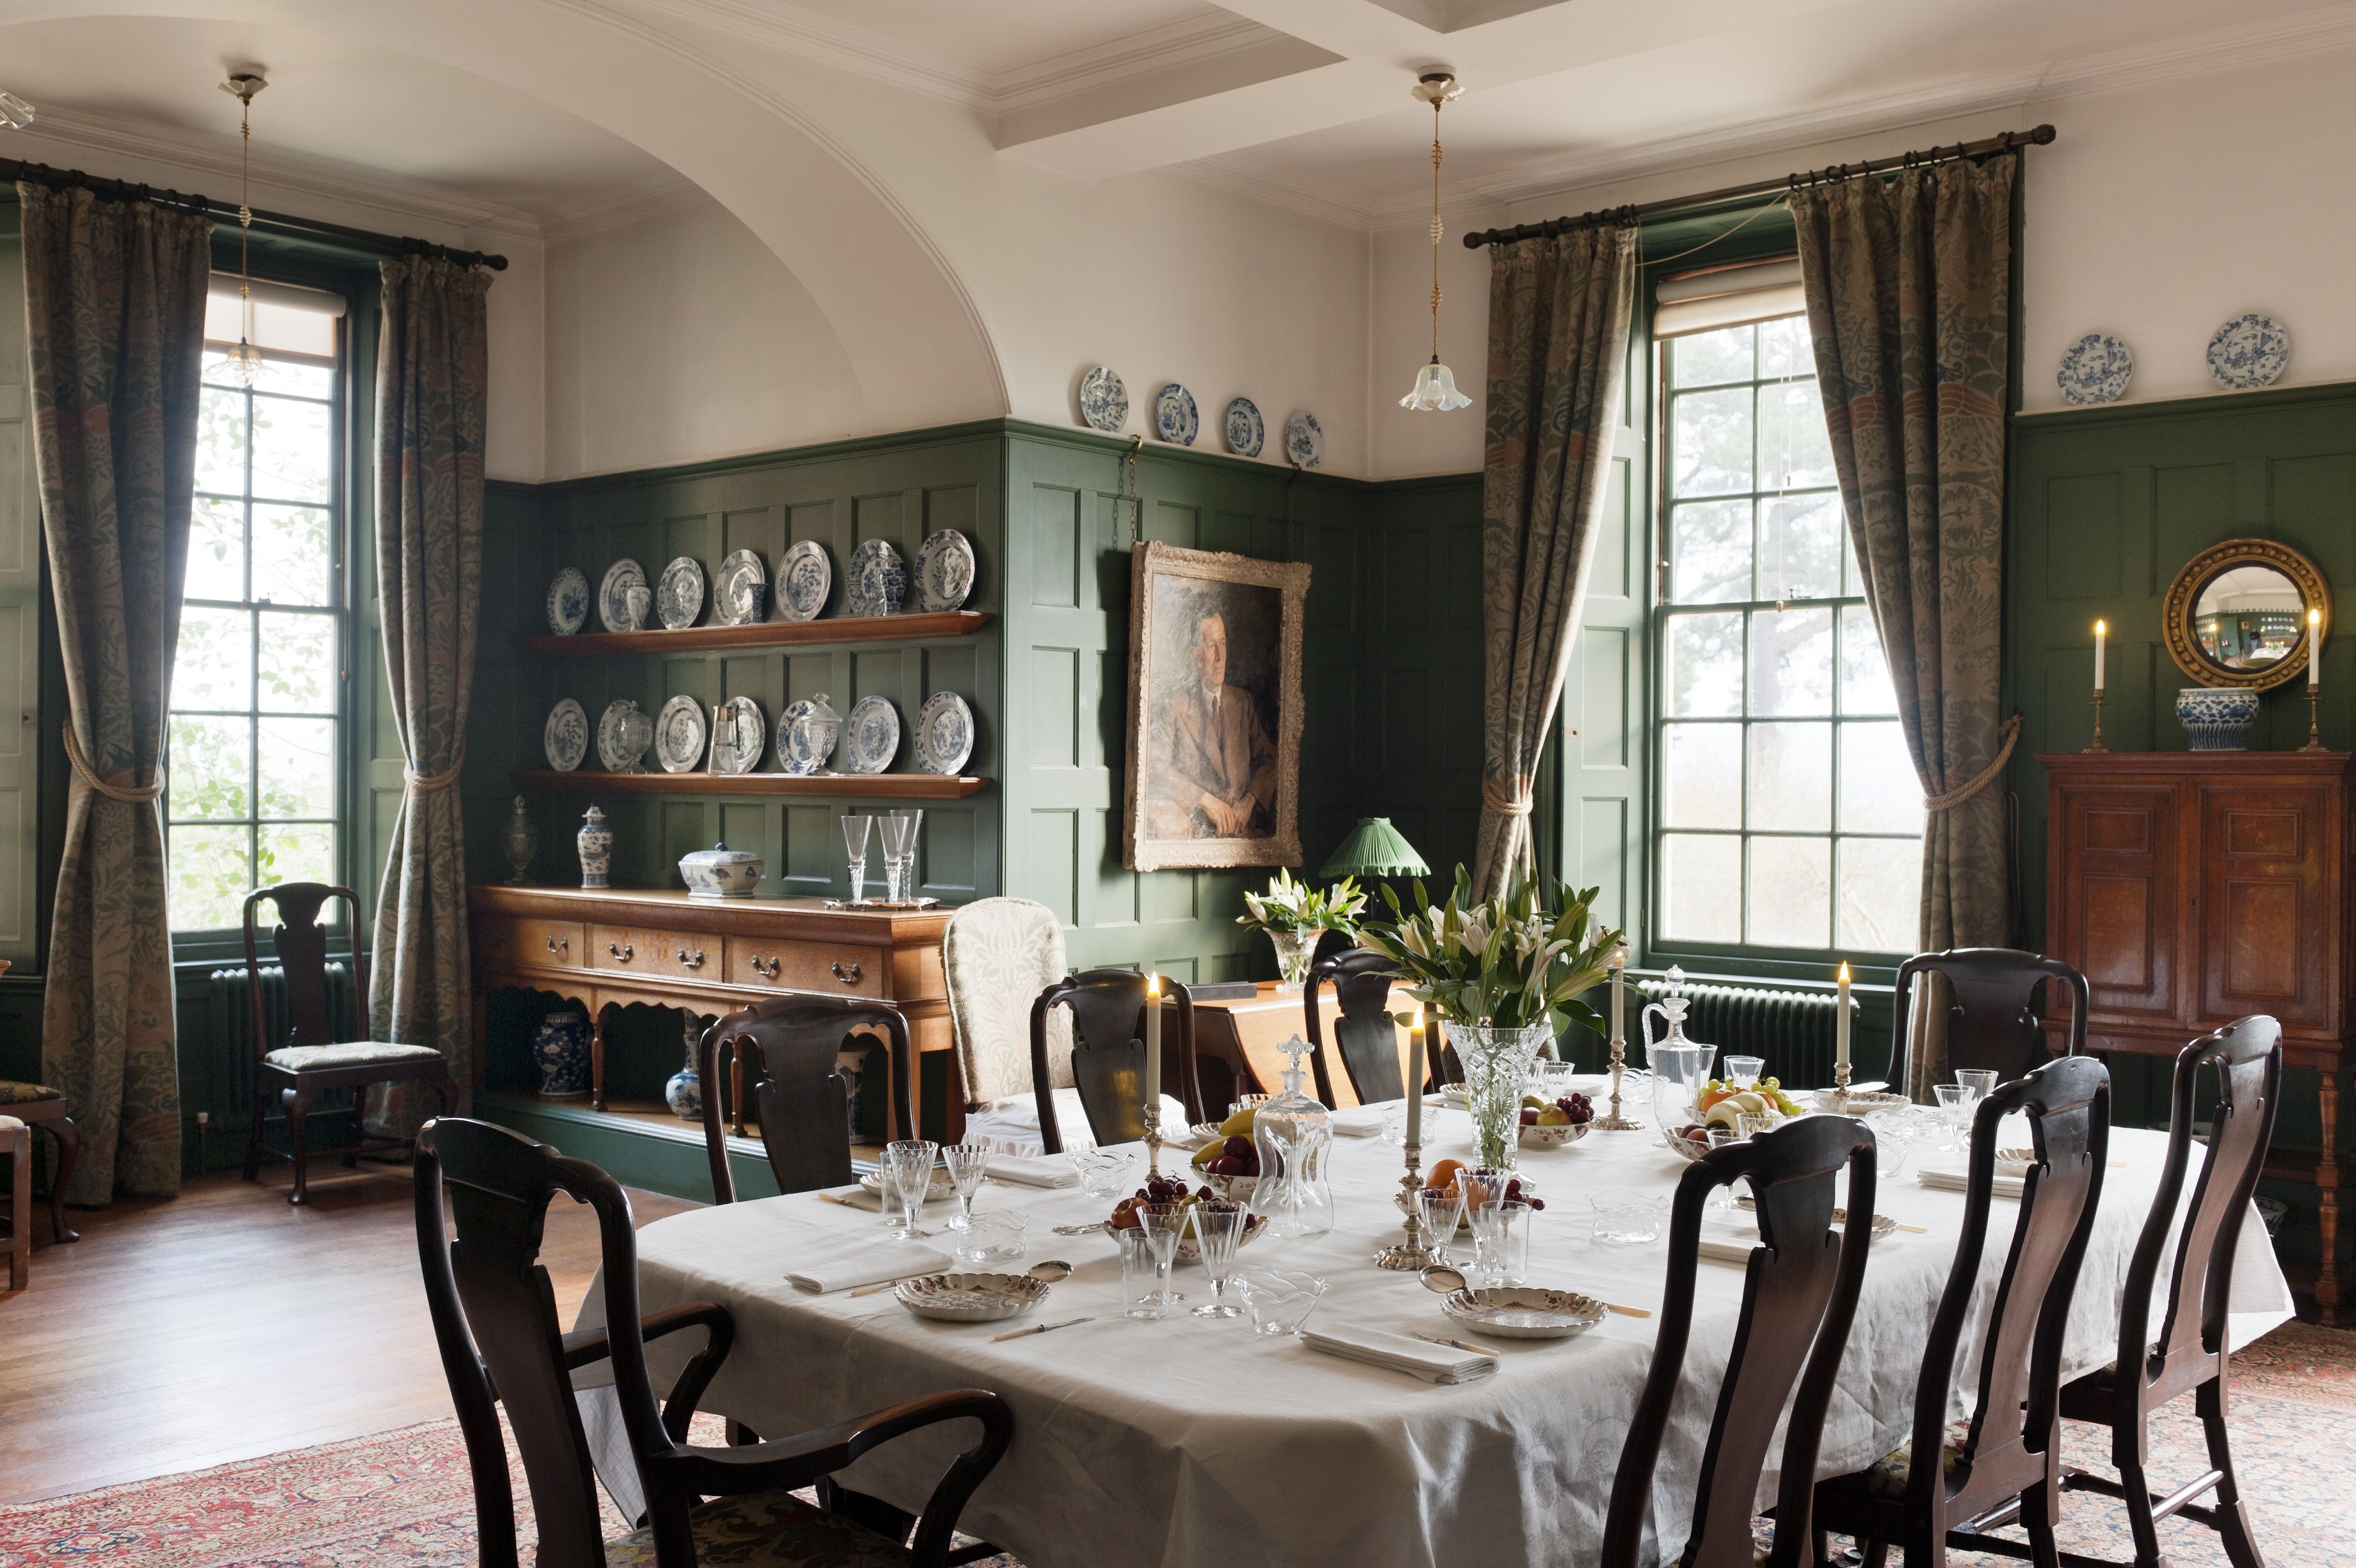 The Dining Room At Standen West Sussex